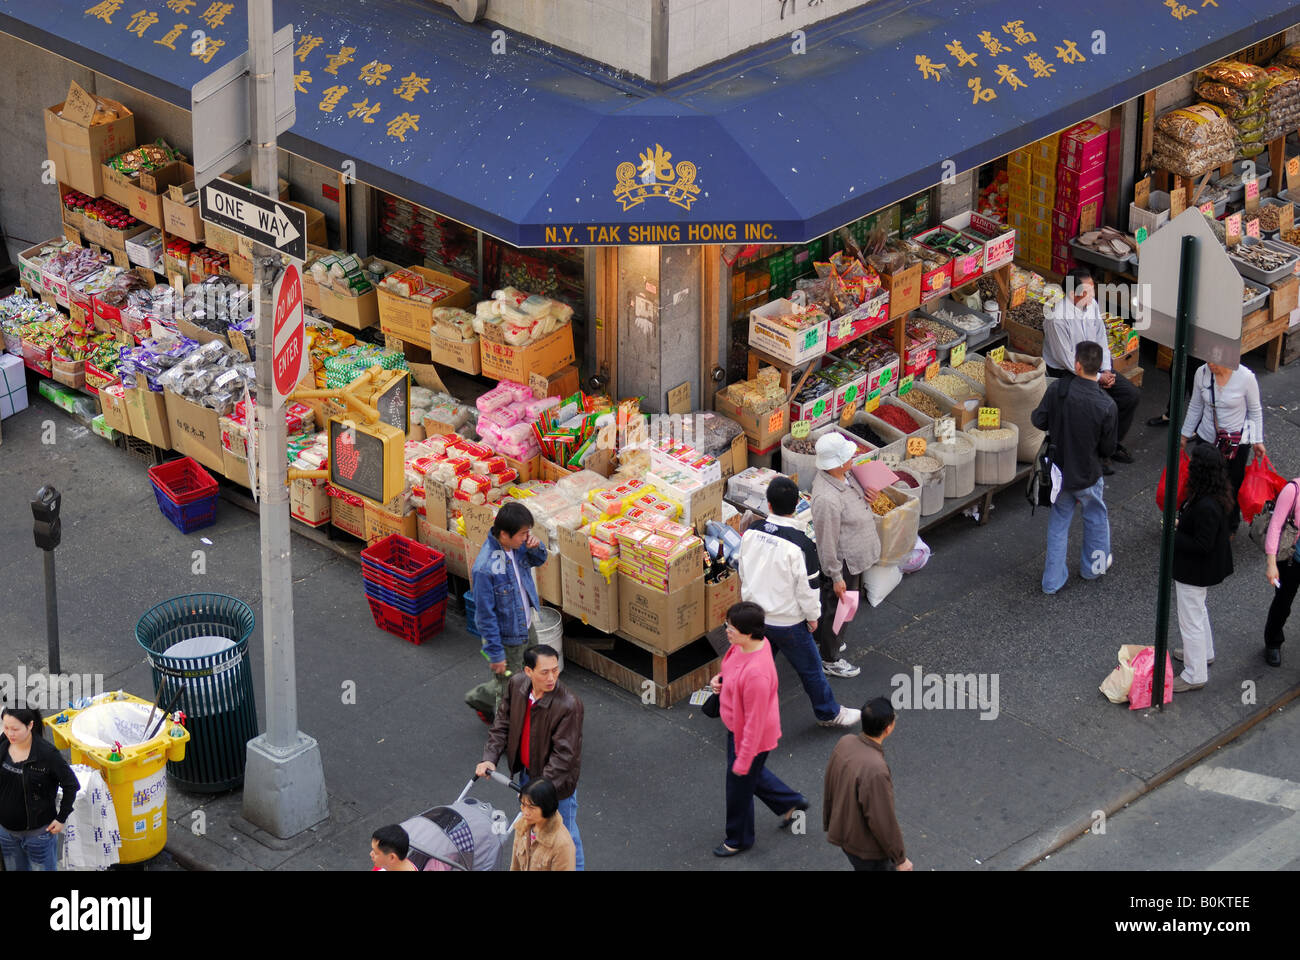 Shop on the corner in chinatown, New York - Stock Image